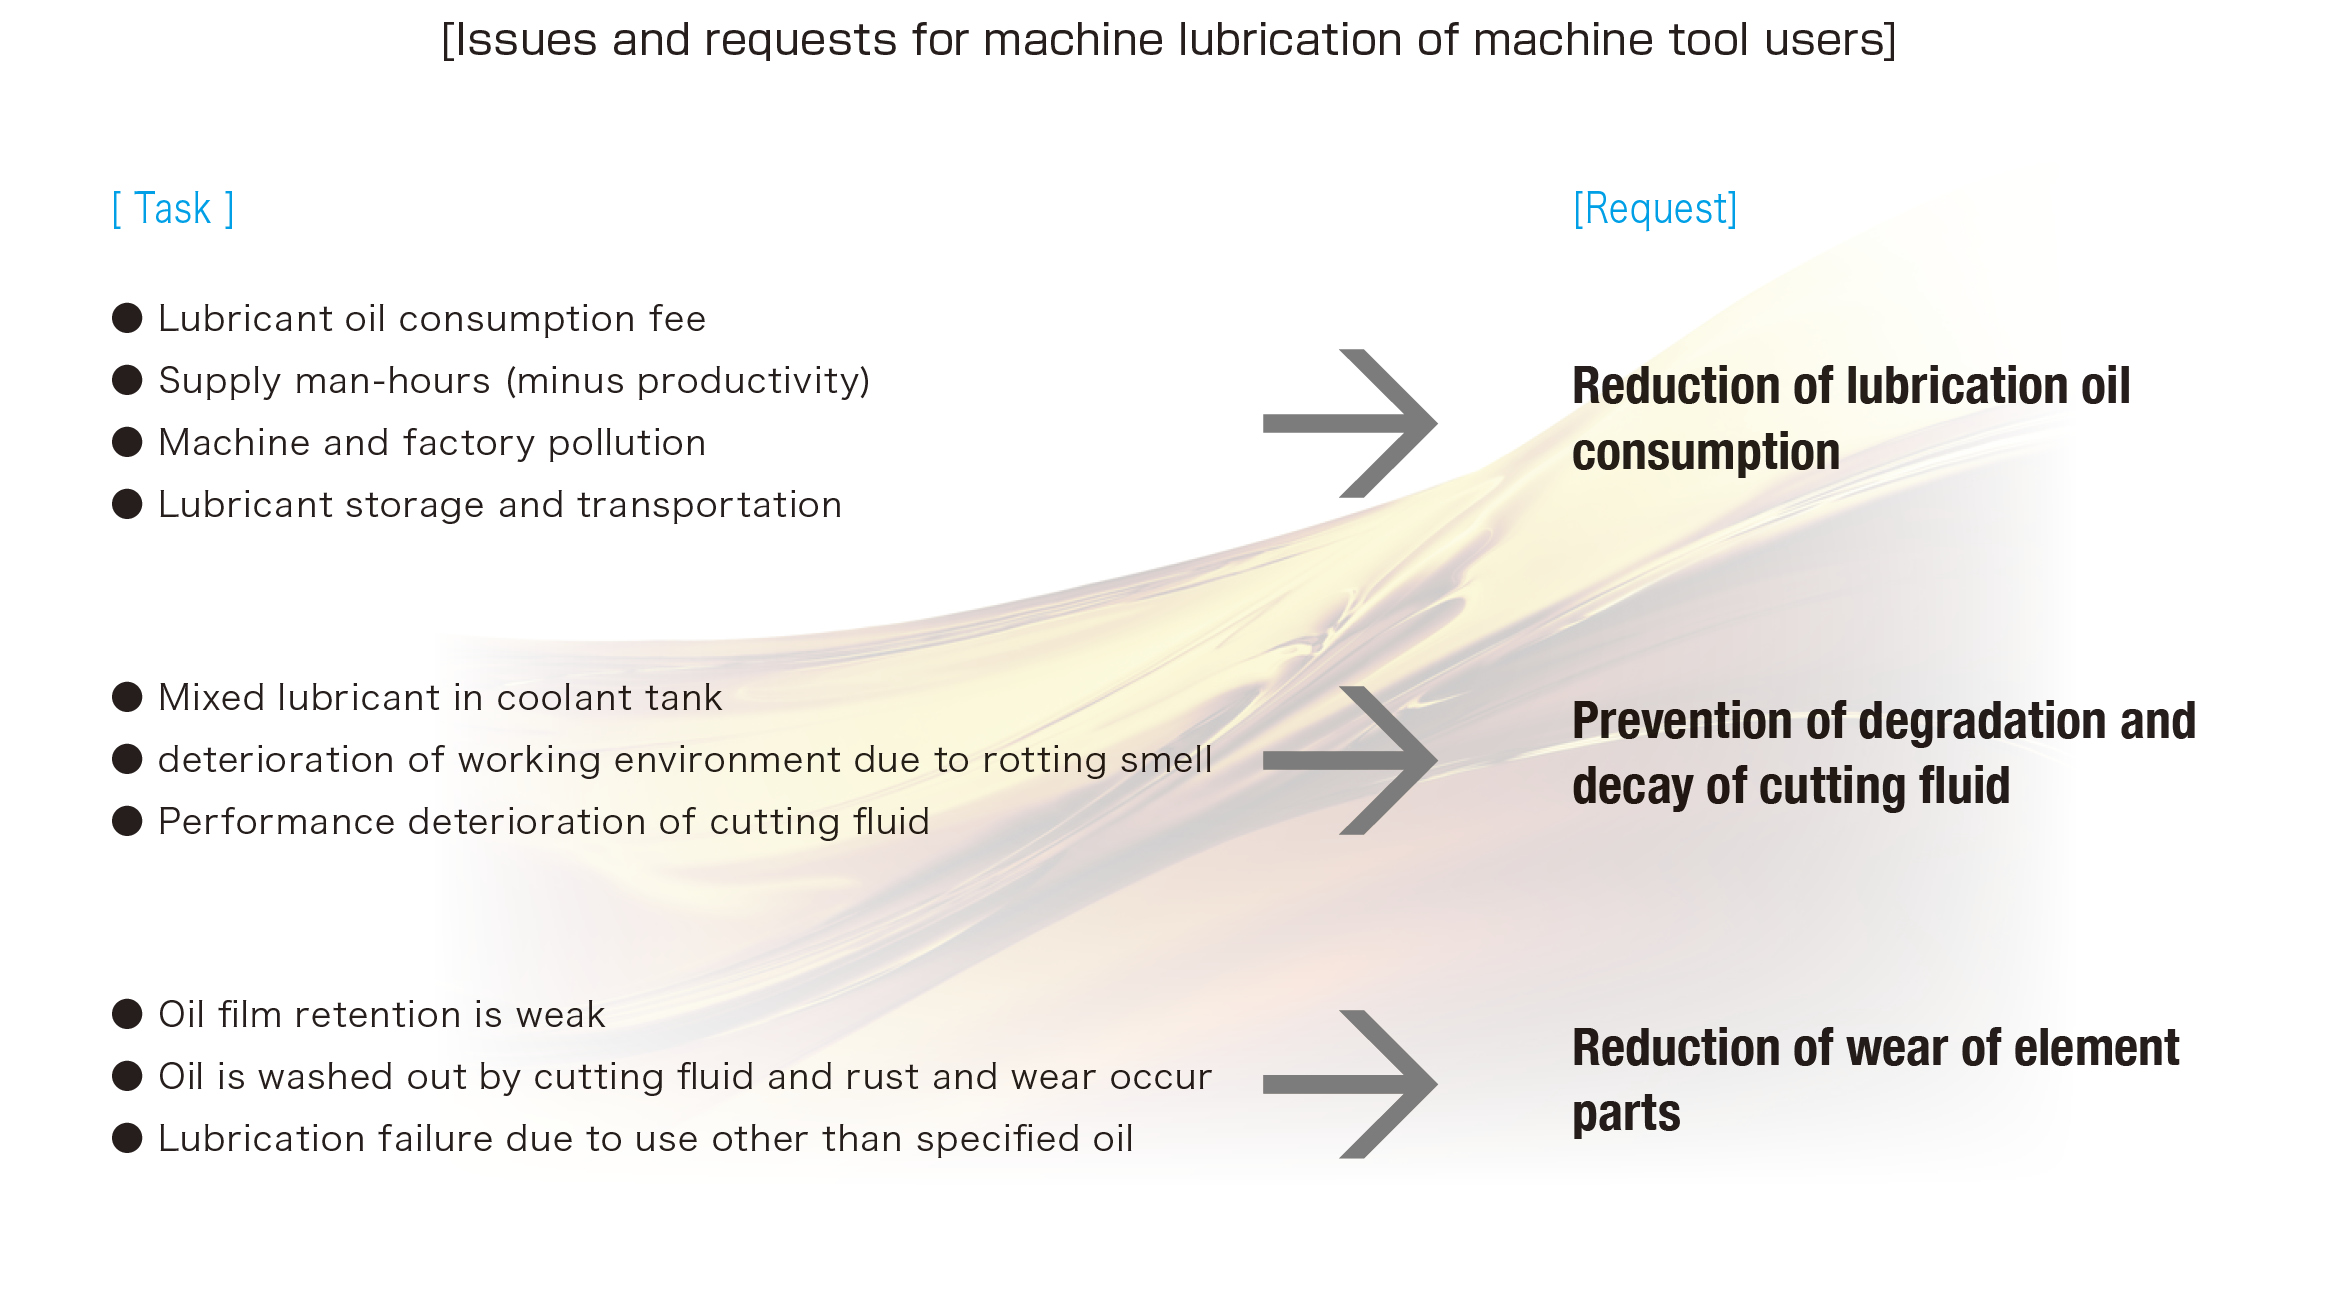 The oil lubrication problems which machine tools users are facing